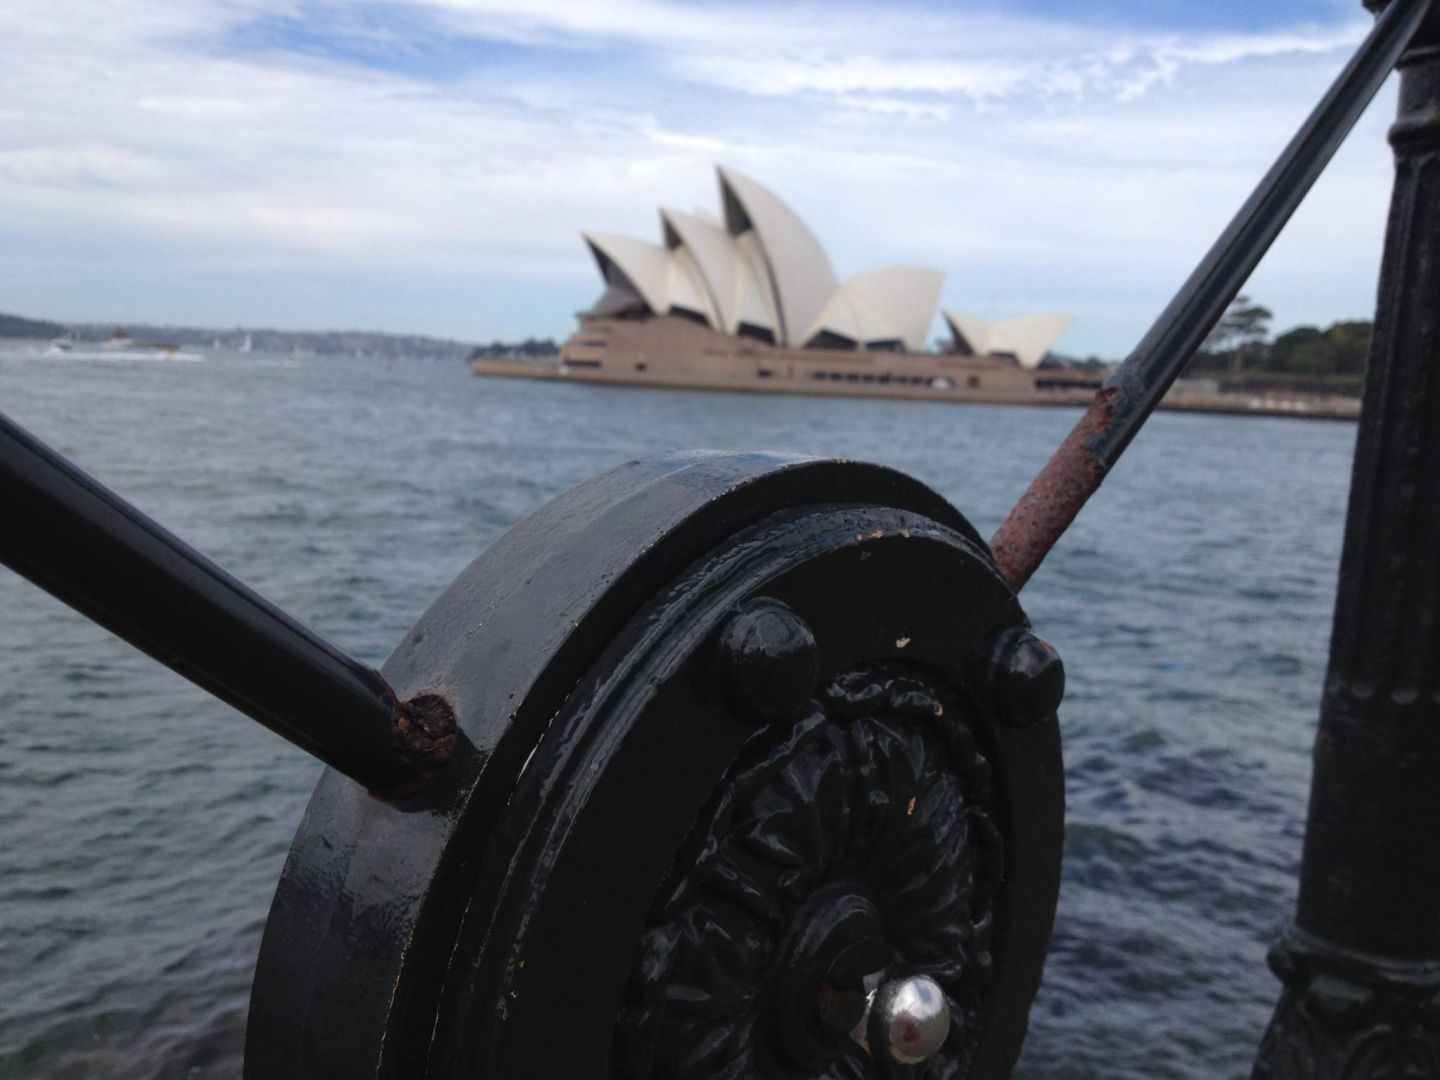 A view across to Sydney Opera House